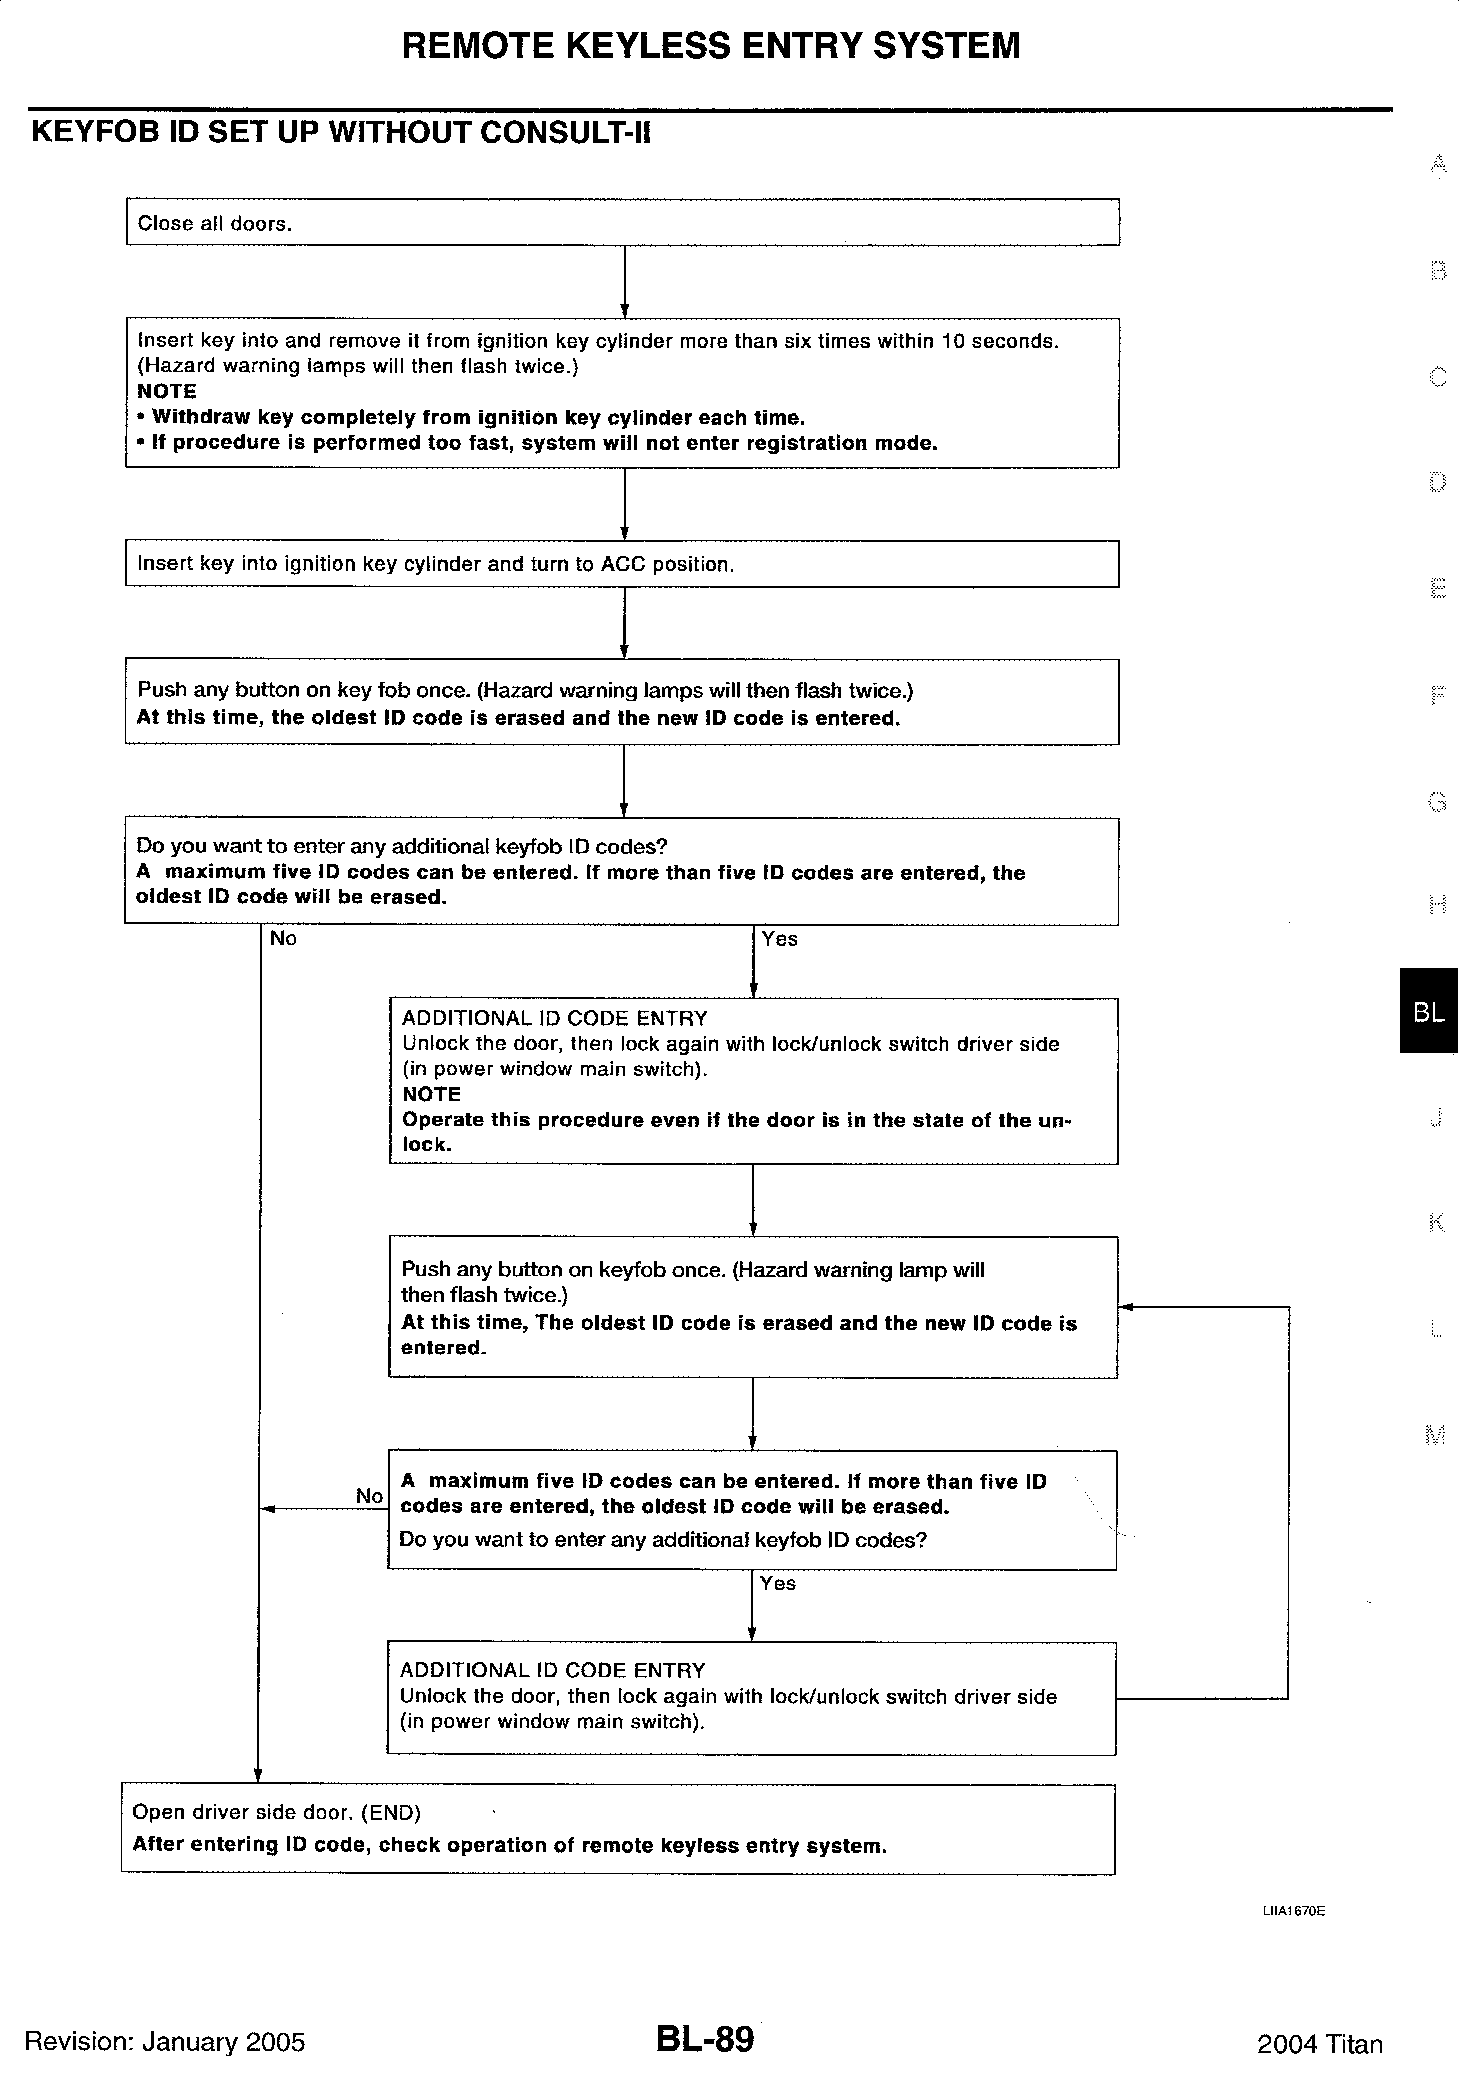 I Have An Infiniti J30 1997 And The Keyless Entry Remote Stopped For Q45 Starter Graphic